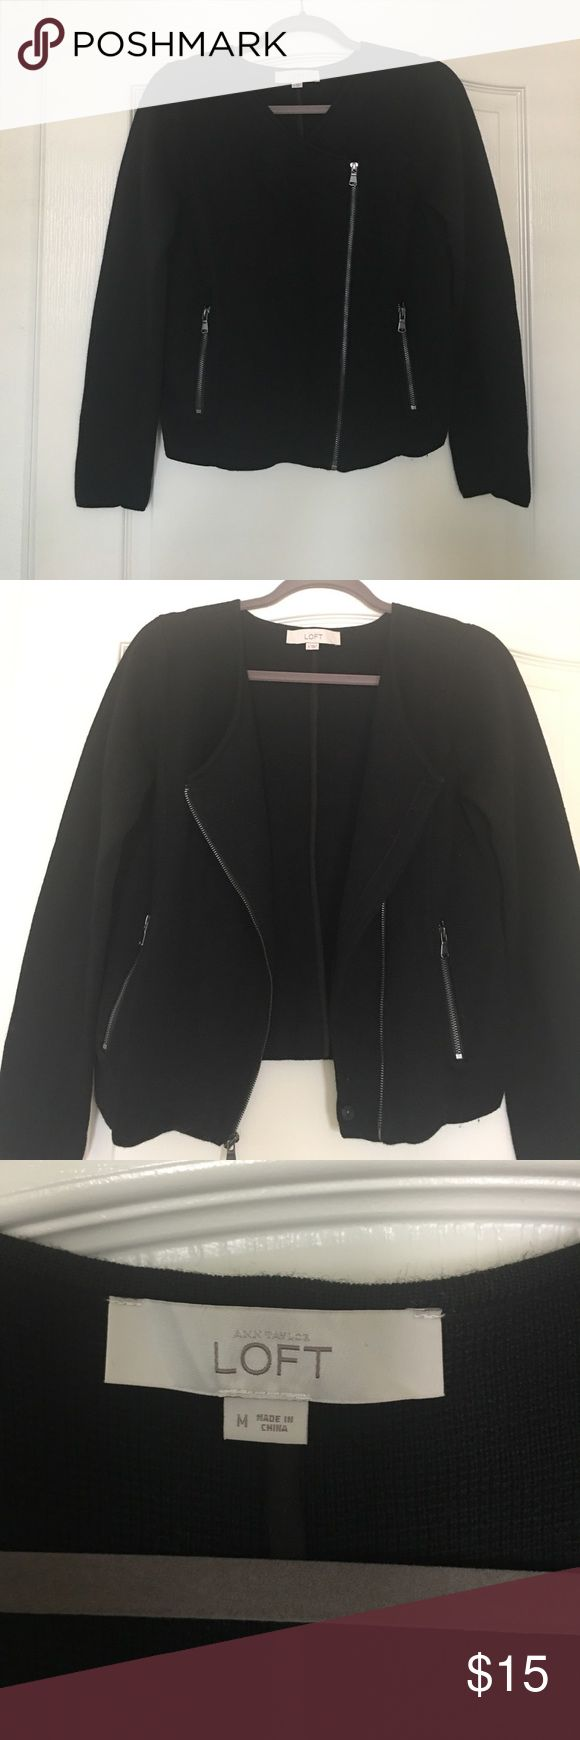 LOFT Knit Moto-Style Sweater-Jacket Love the moto look?  You will love this cute knit, moto-style black sweater-jacket from LOFT.  In GREAT condition. Wear open or zipped up, easy transitional piece that can be easily dressed up or down. 😉 LOFT Jackets & Coats